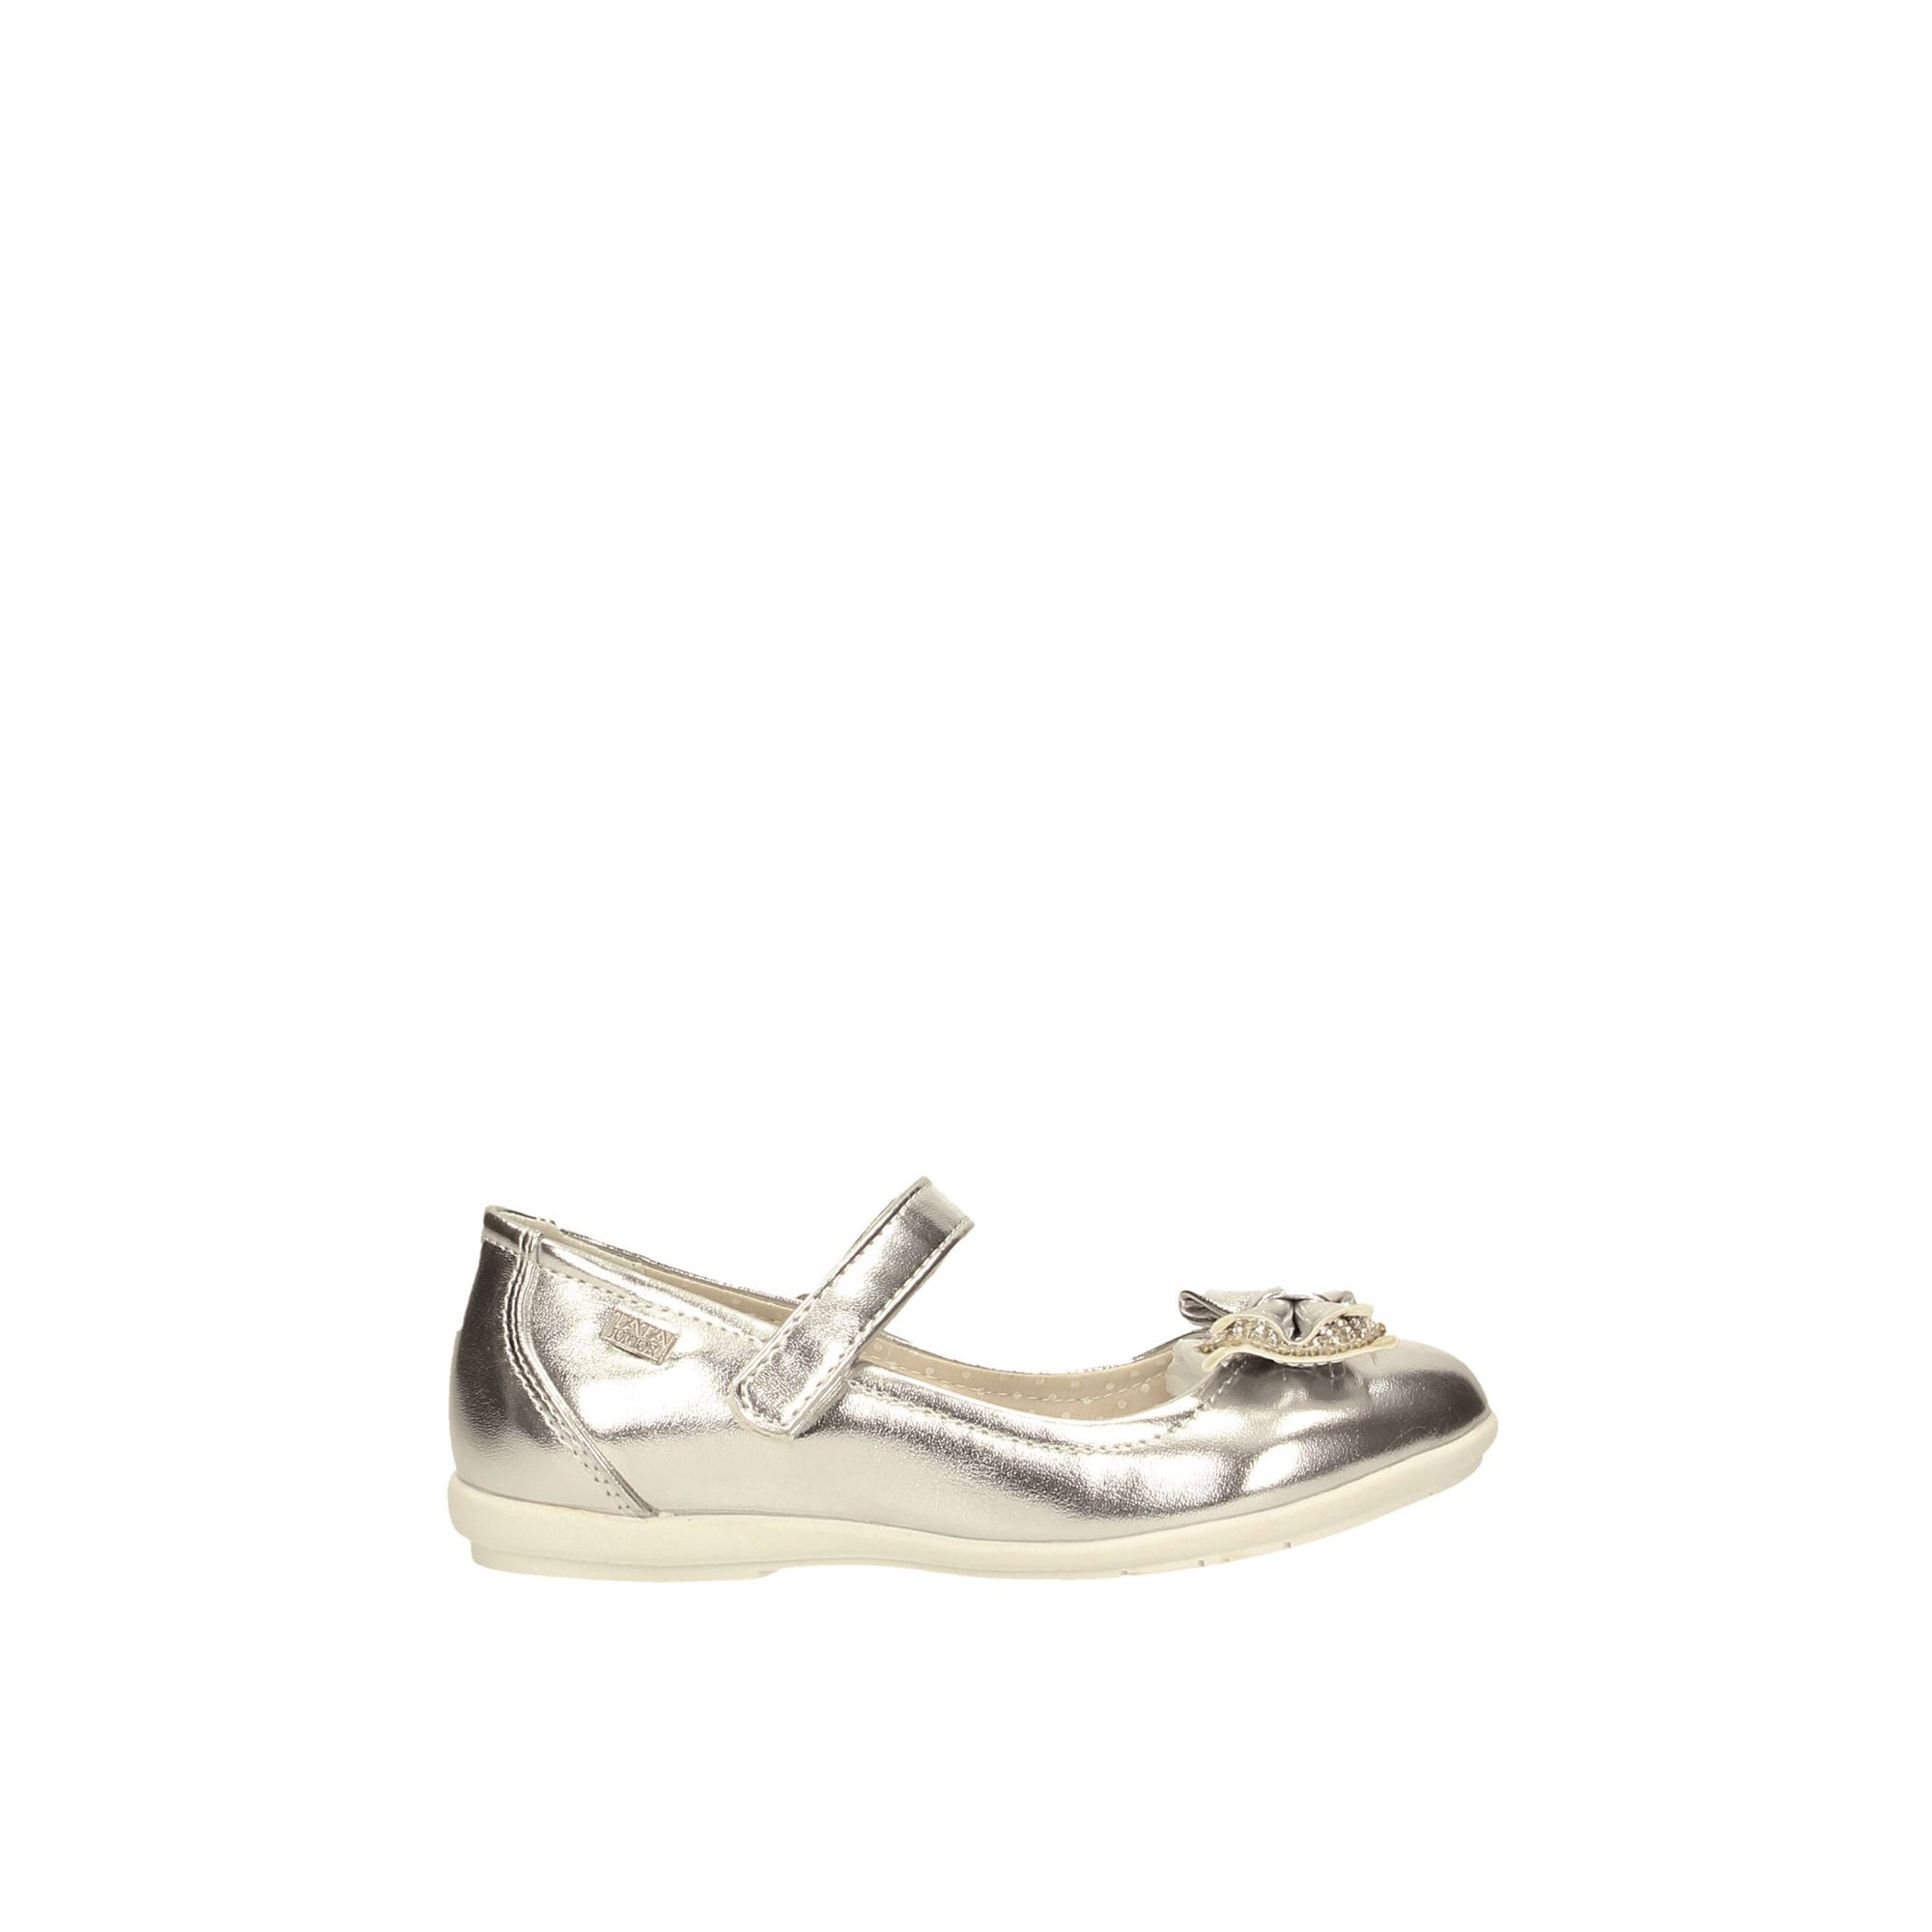 Tata Italia Shoes Junior Ballerine Silver S19-9901-24